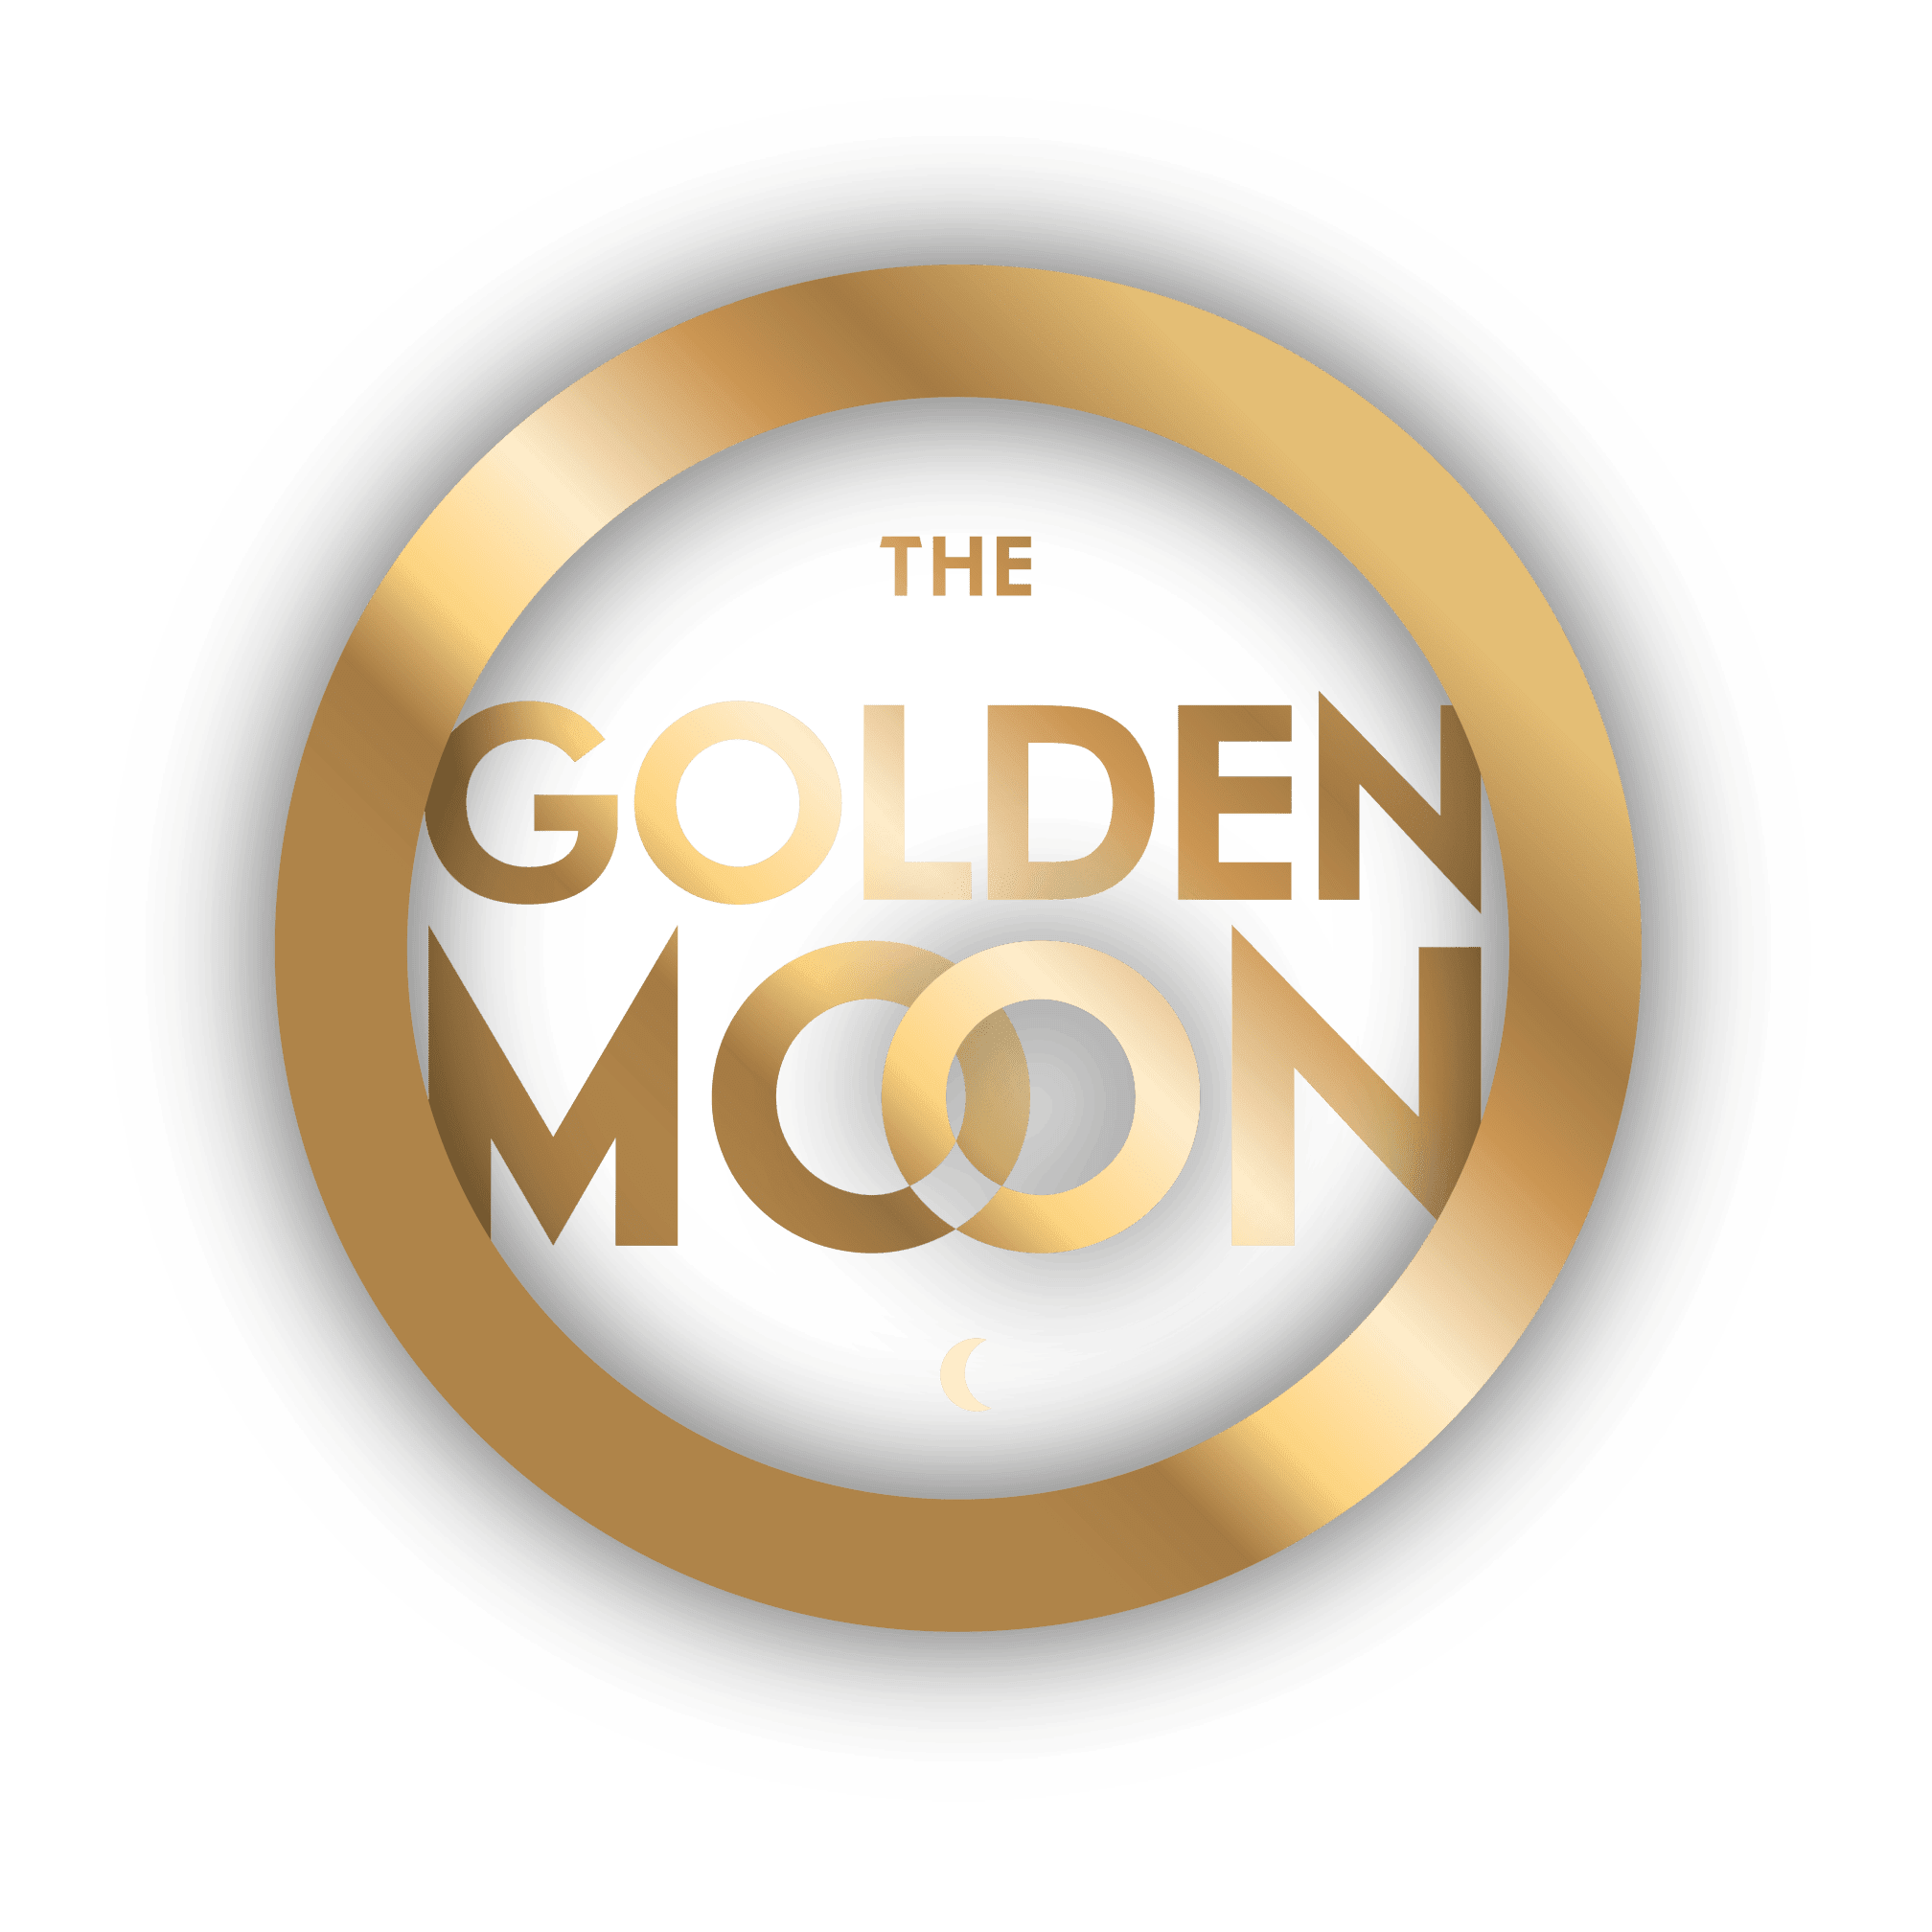 THEGOLDENMOON.COM - London, London E7 8BE - 07505 369856 | ShowMeLocal.com